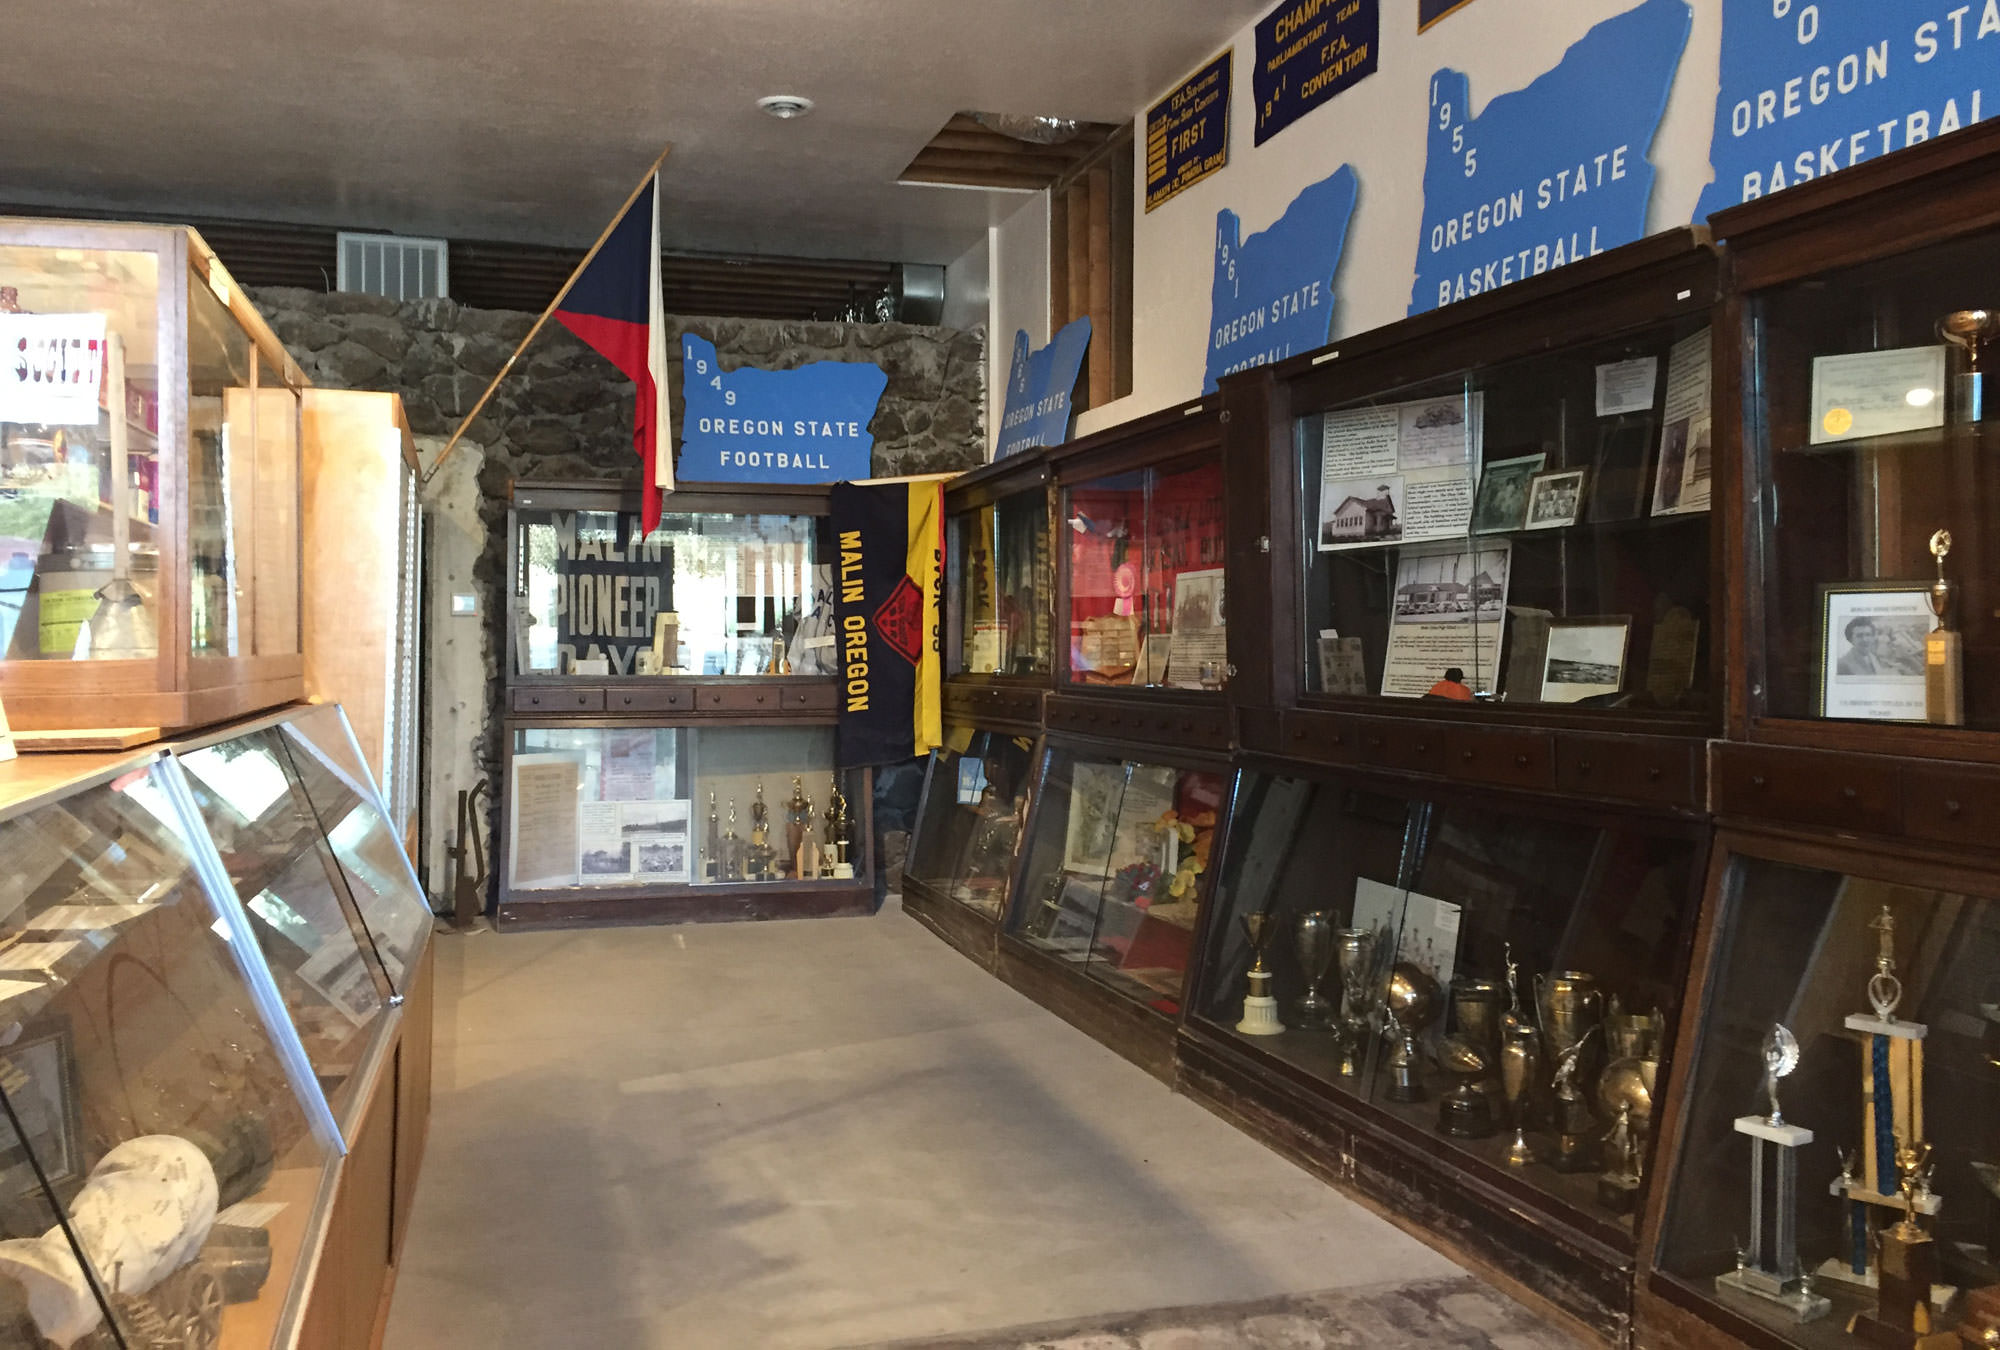 Basalt rock walls surround cases of local memorabilia, including basketball championship trophies.